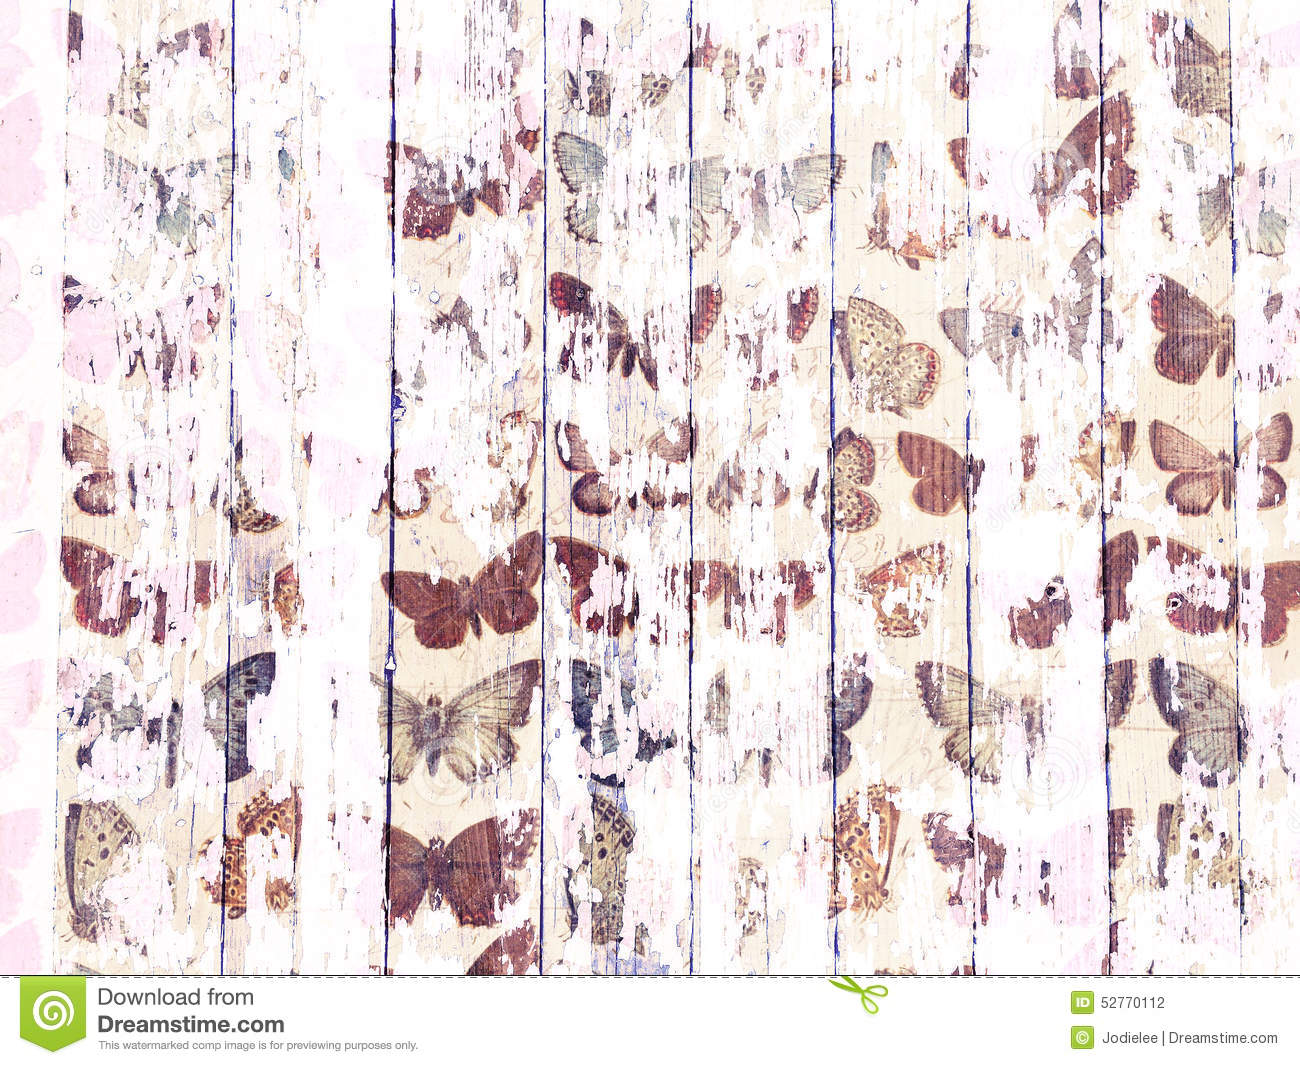 Shabby wood-grain texture white washed with distressed butterfly pattern